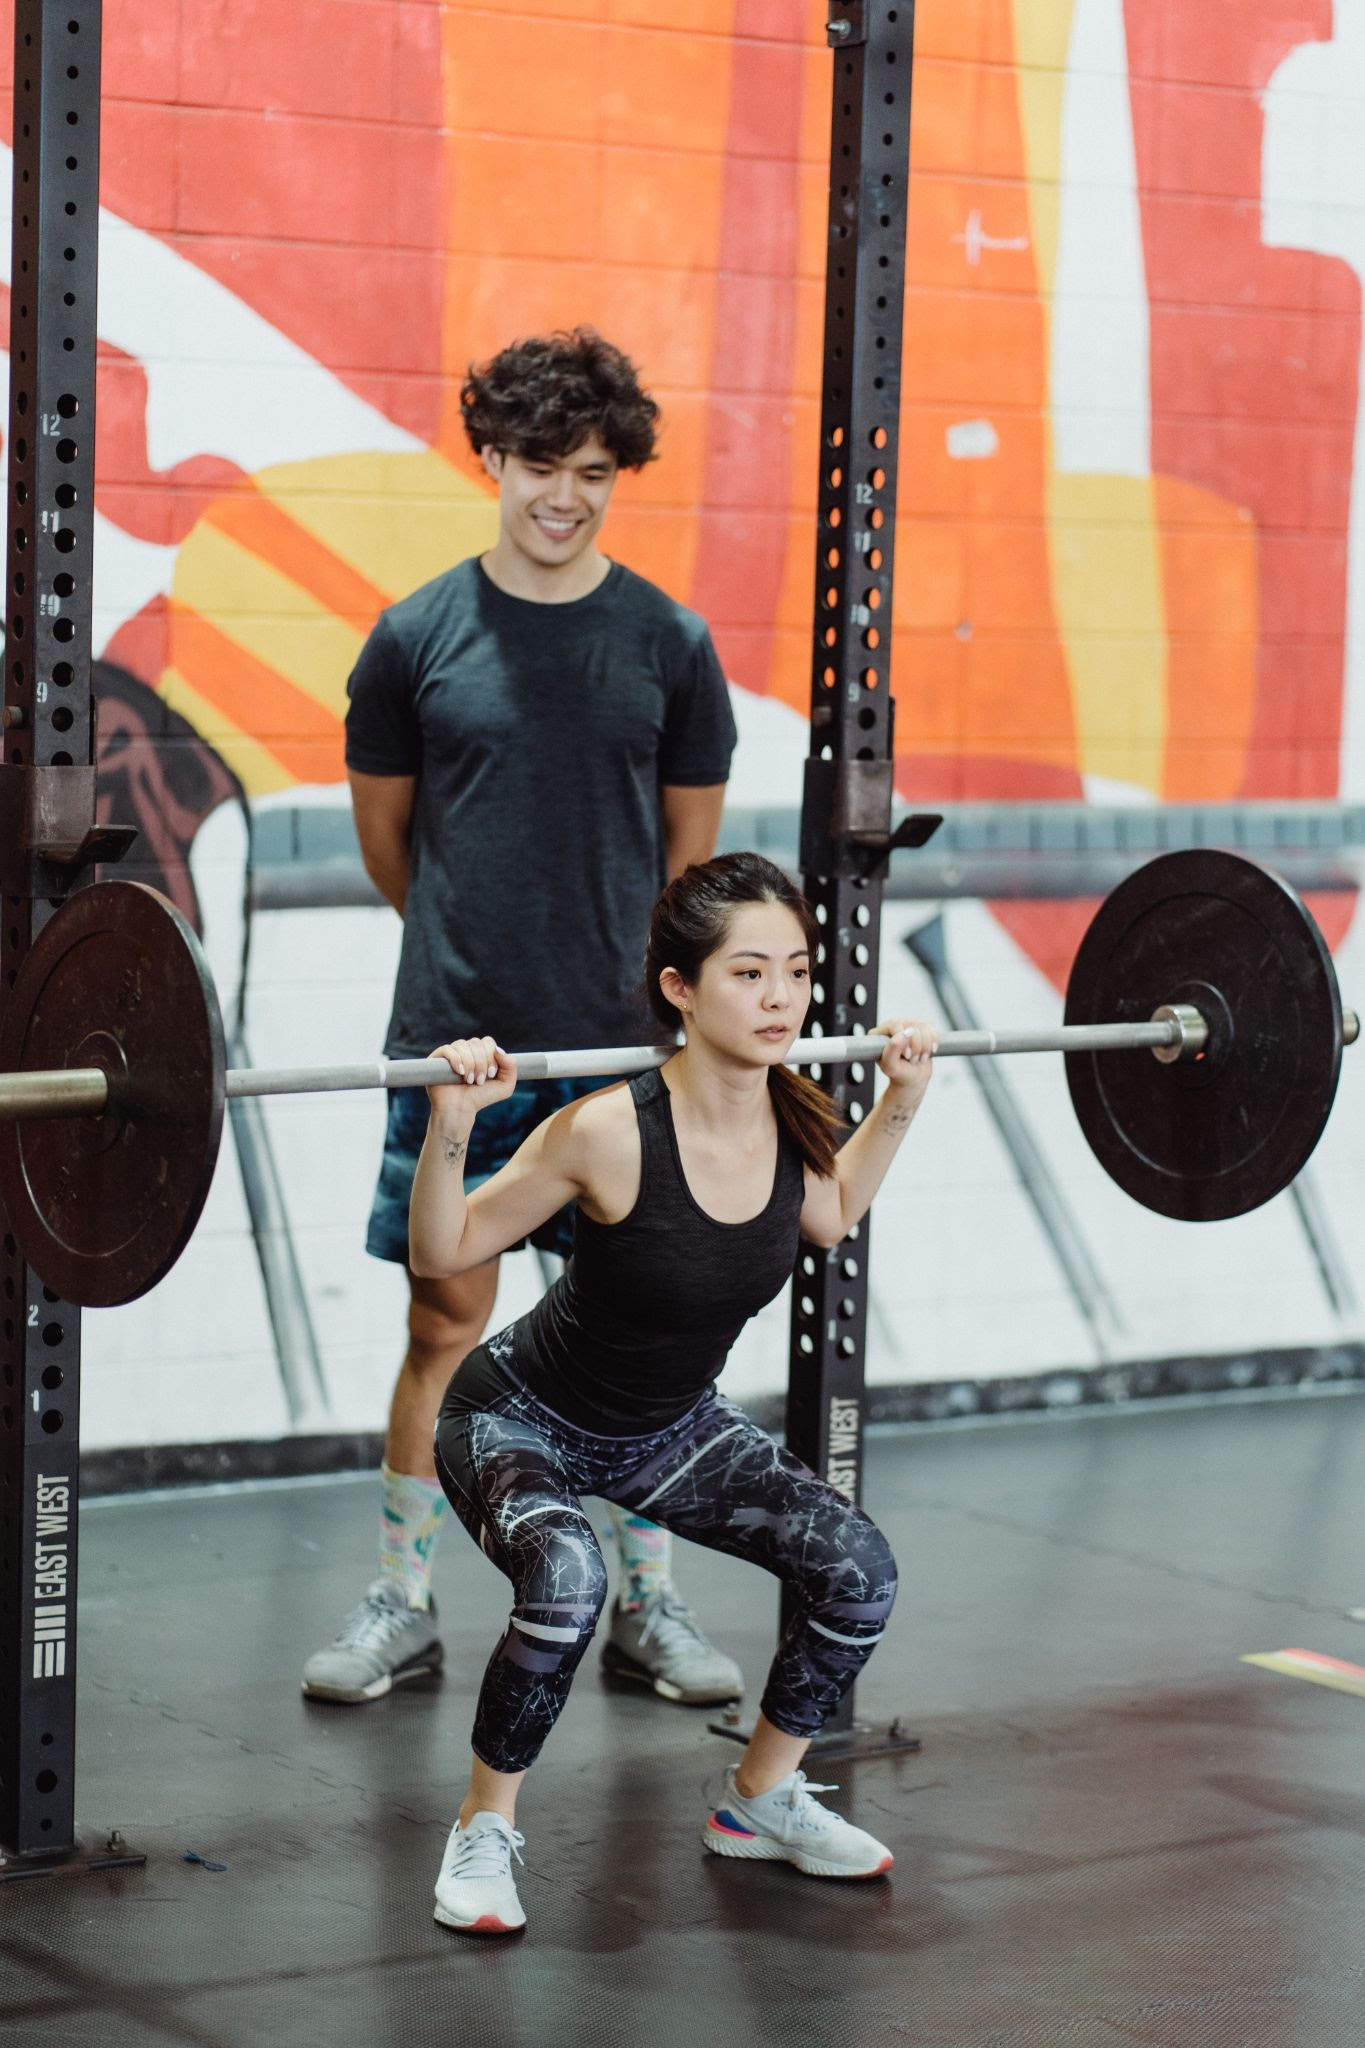 female cyclist improves strength by squatting a heavy weight